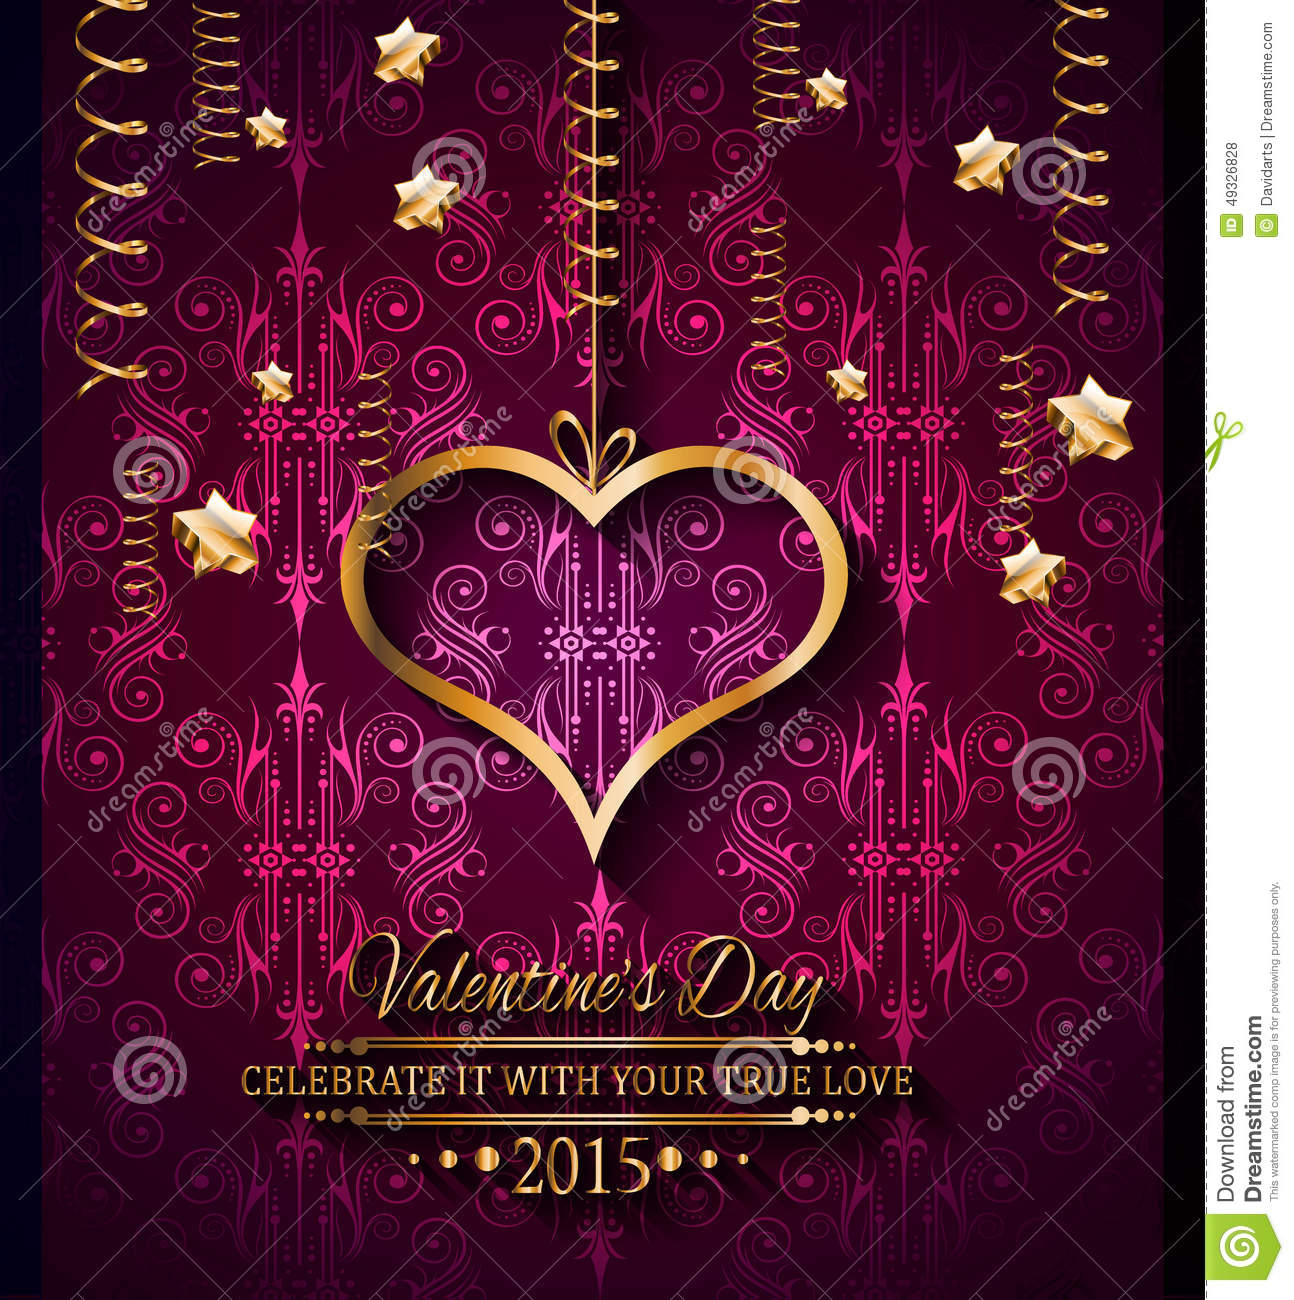 Romance Book Cover Vector : Valentines day background for dinner invitations stock